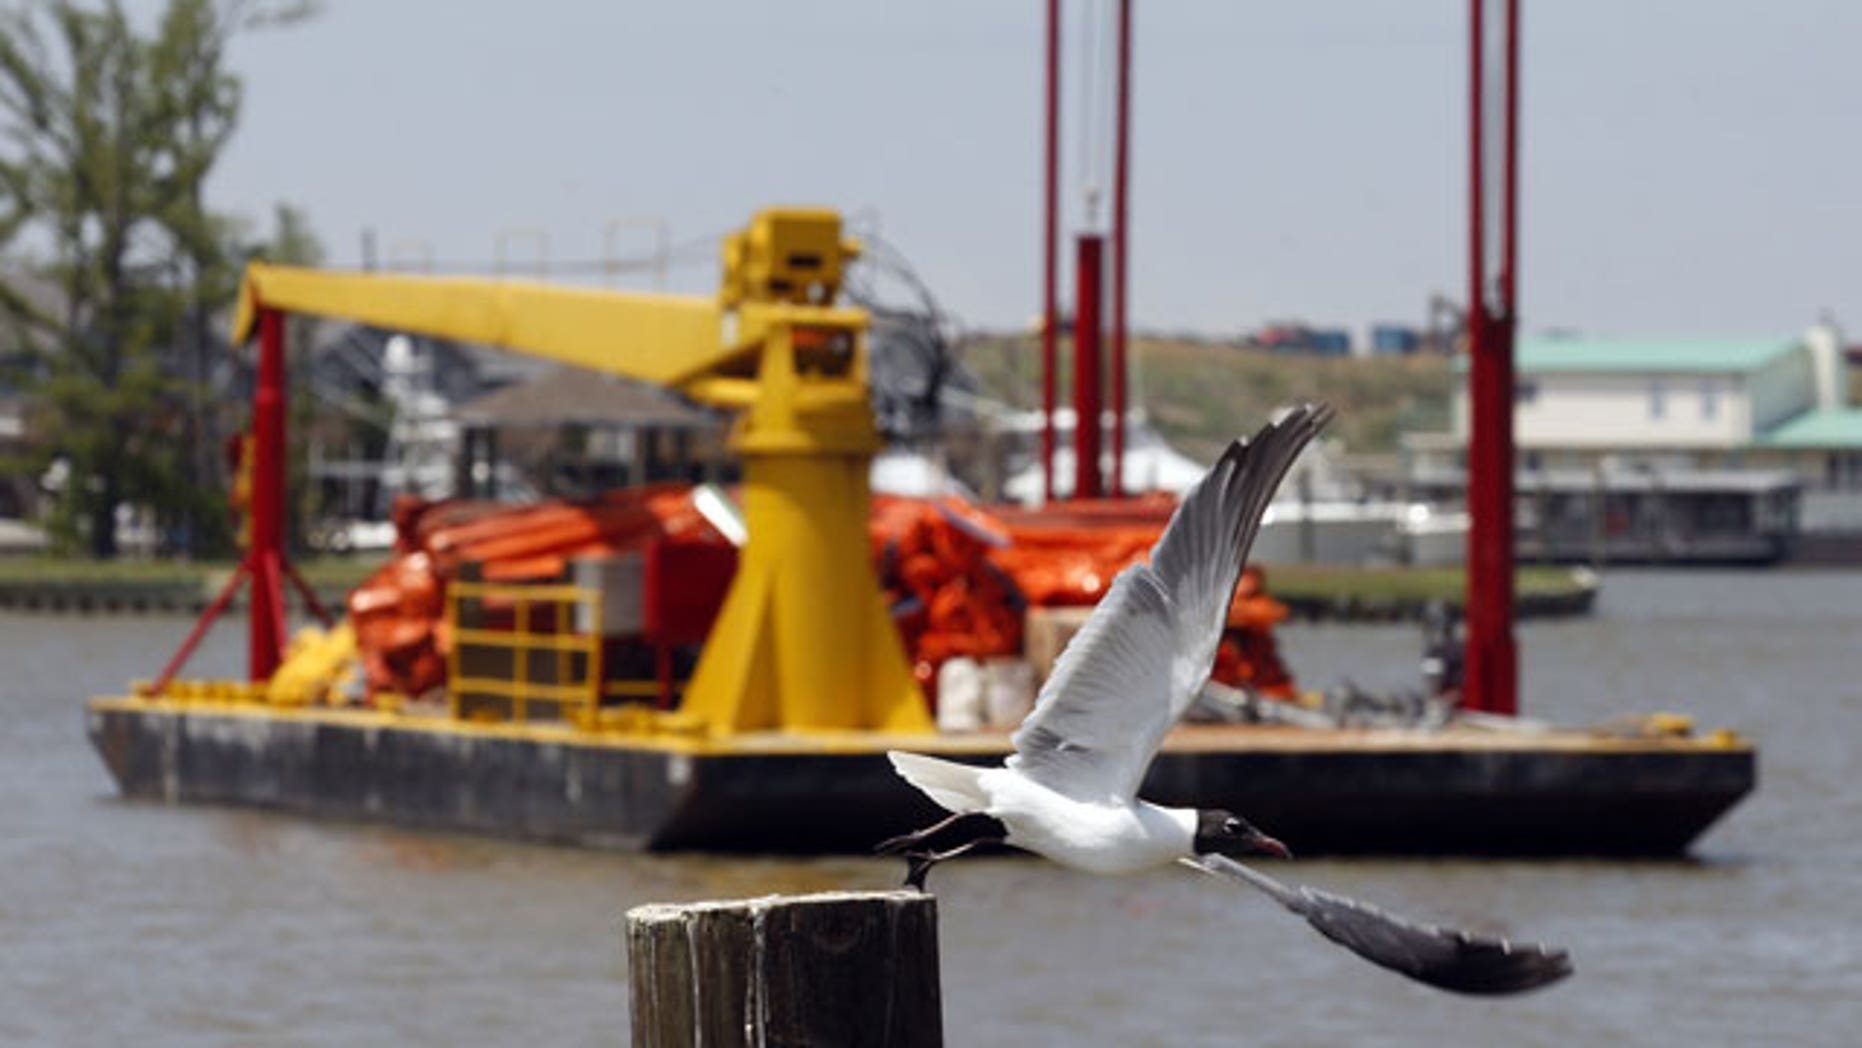 A bird flies off of a post near a barge carrying oil booms to be deployed to assist in the containment of oil from a leaking pipeline in the Gulf of Mexico near the coast of Louisiana in Venice, La., Thursday, April 29, 2010. The leak resulted from last week's explosion and collapse of the Deepwater Horizon oil rig.